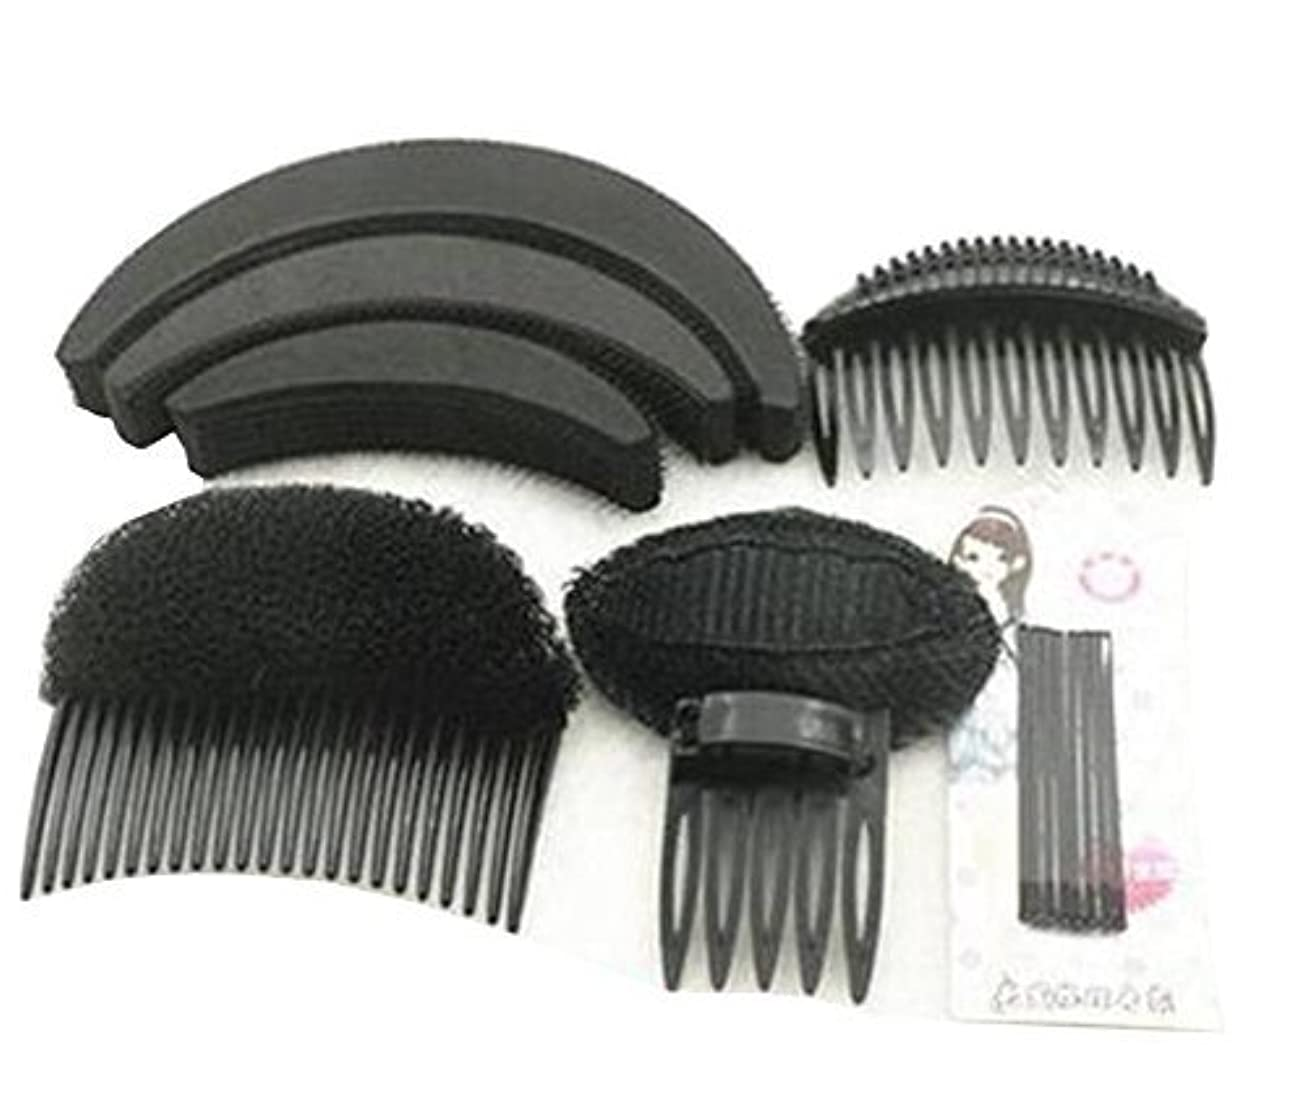 それマイルストーンチャンピオン1 Set As picture Shown Hair Styler Styling Tool DIY Hairpin Bump Up Inserts Base Comb Bumpits Bump Foam Pads Braiding...